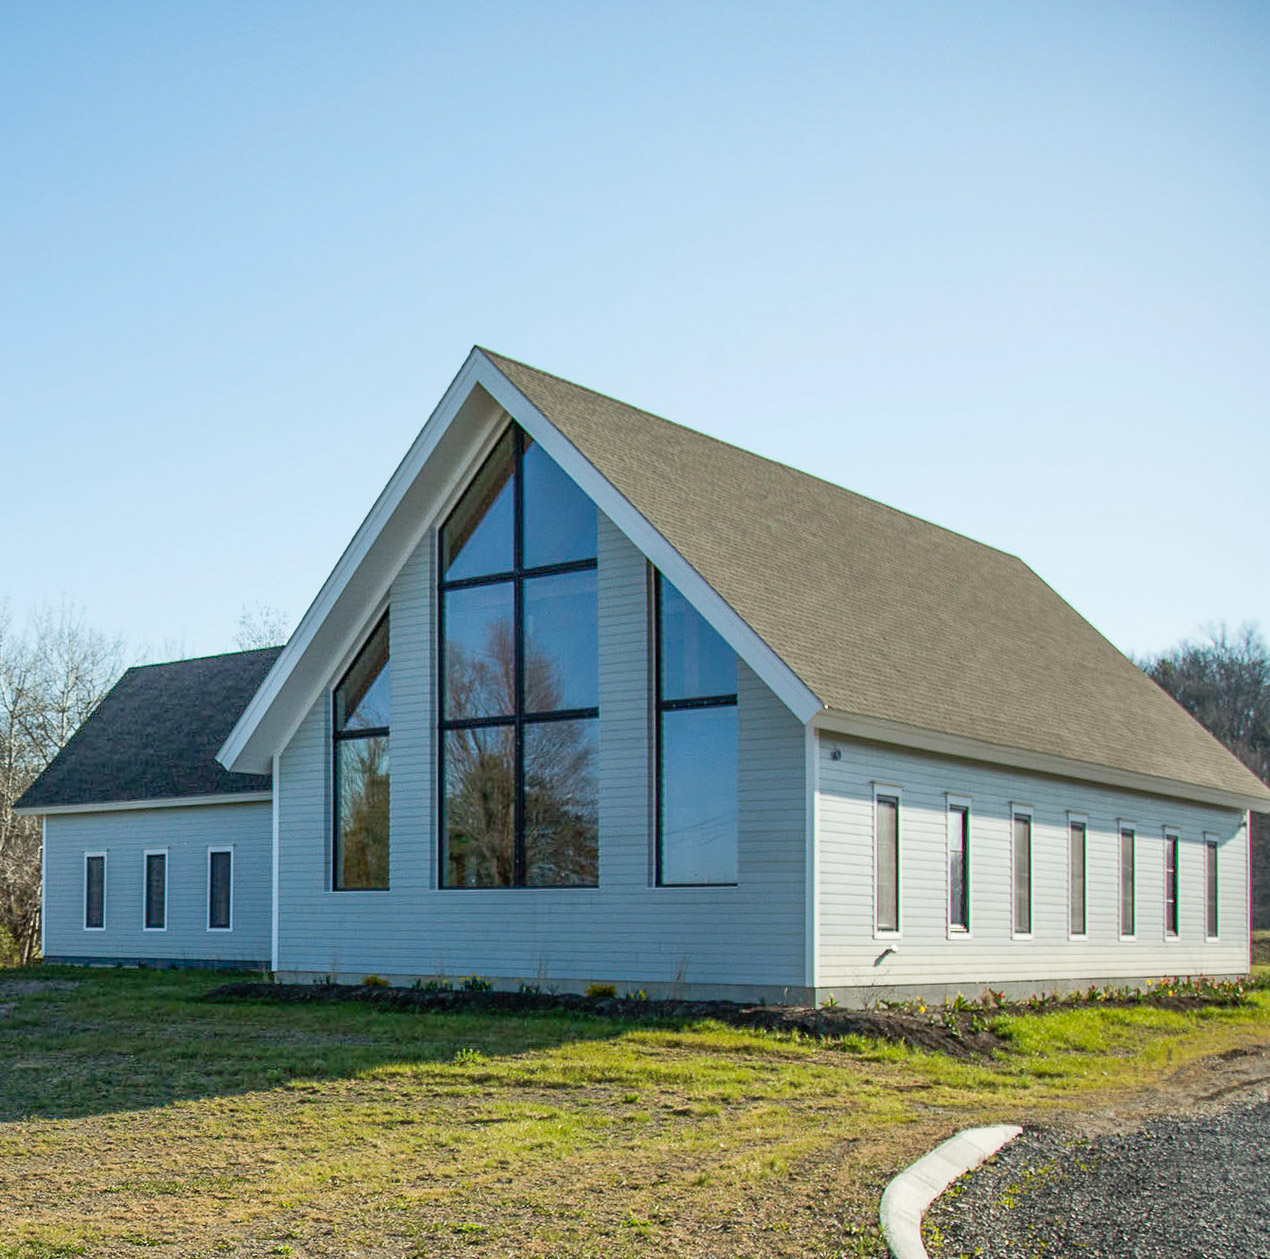 Seventh-day AdvenSeventh-day Adventist Church at Kinderhook with INTUS windows,  3rd Annual PHIUS Passive House Projects Competition Commercial Winnertist Church at Kinderhook with INTUS windows,  3rd Annual PHIUS Passive House Projects Competition Commercial Winner